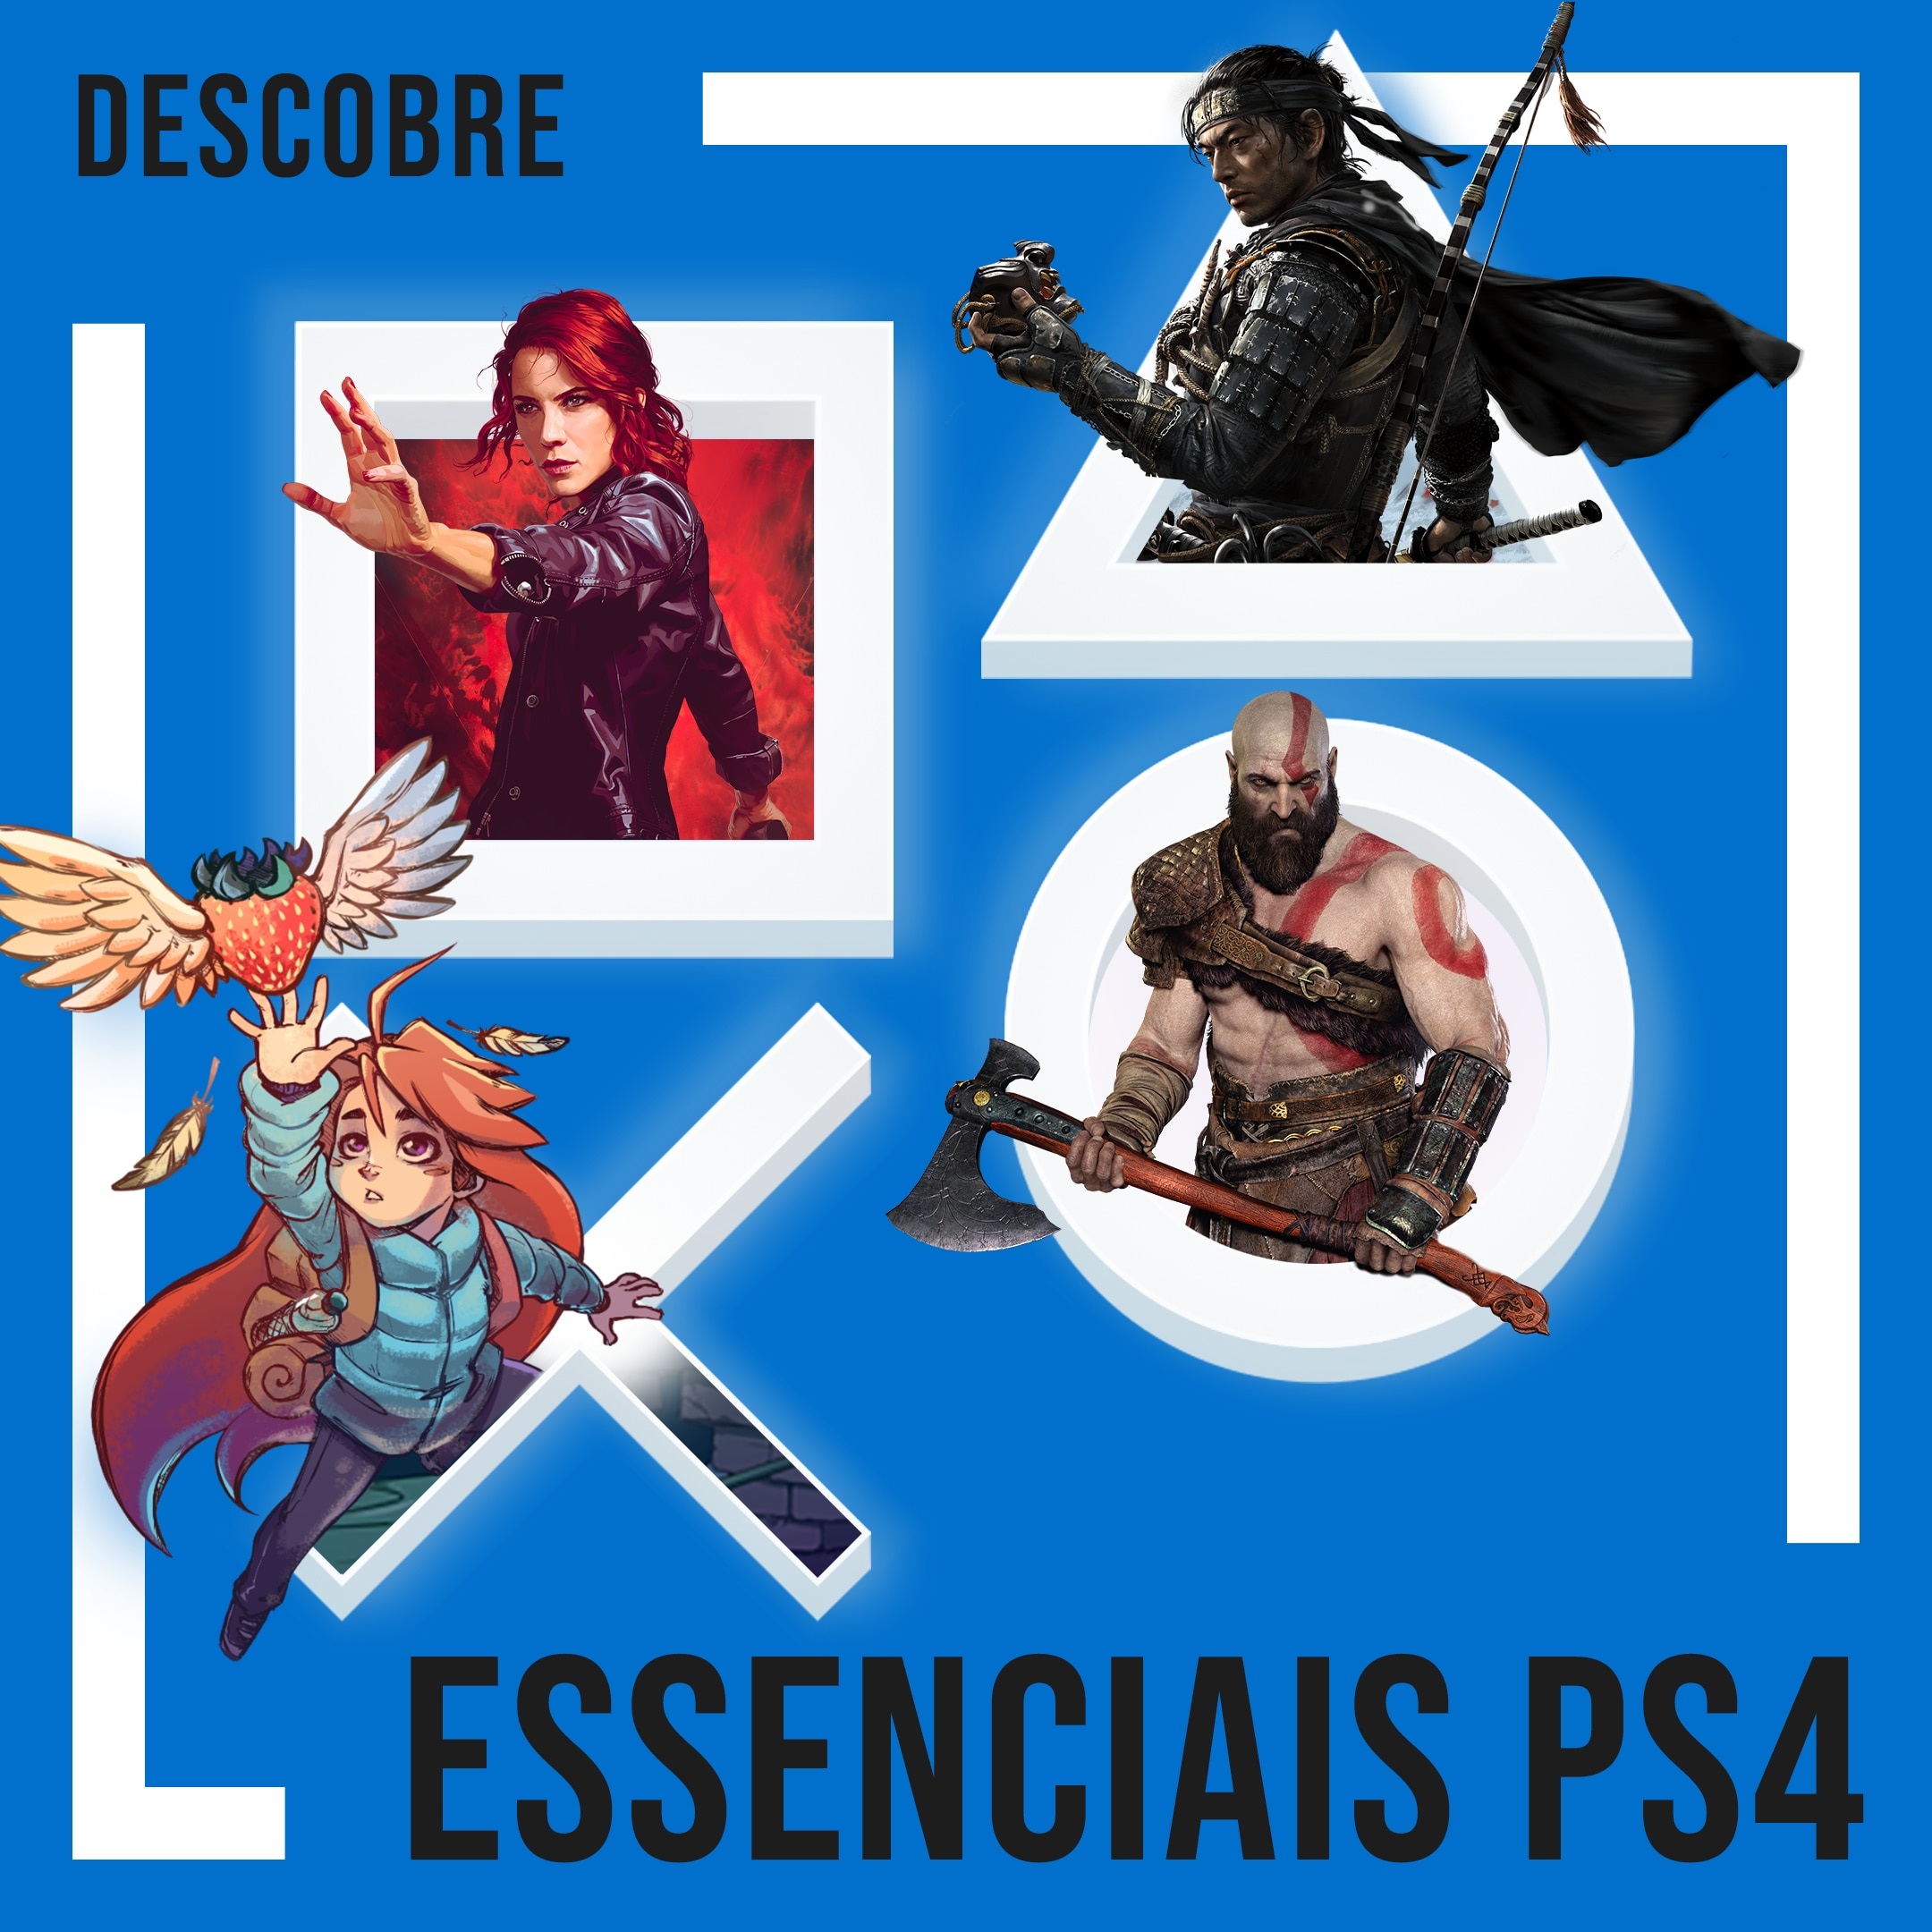 [EDITORIAL] PS4 Essentials